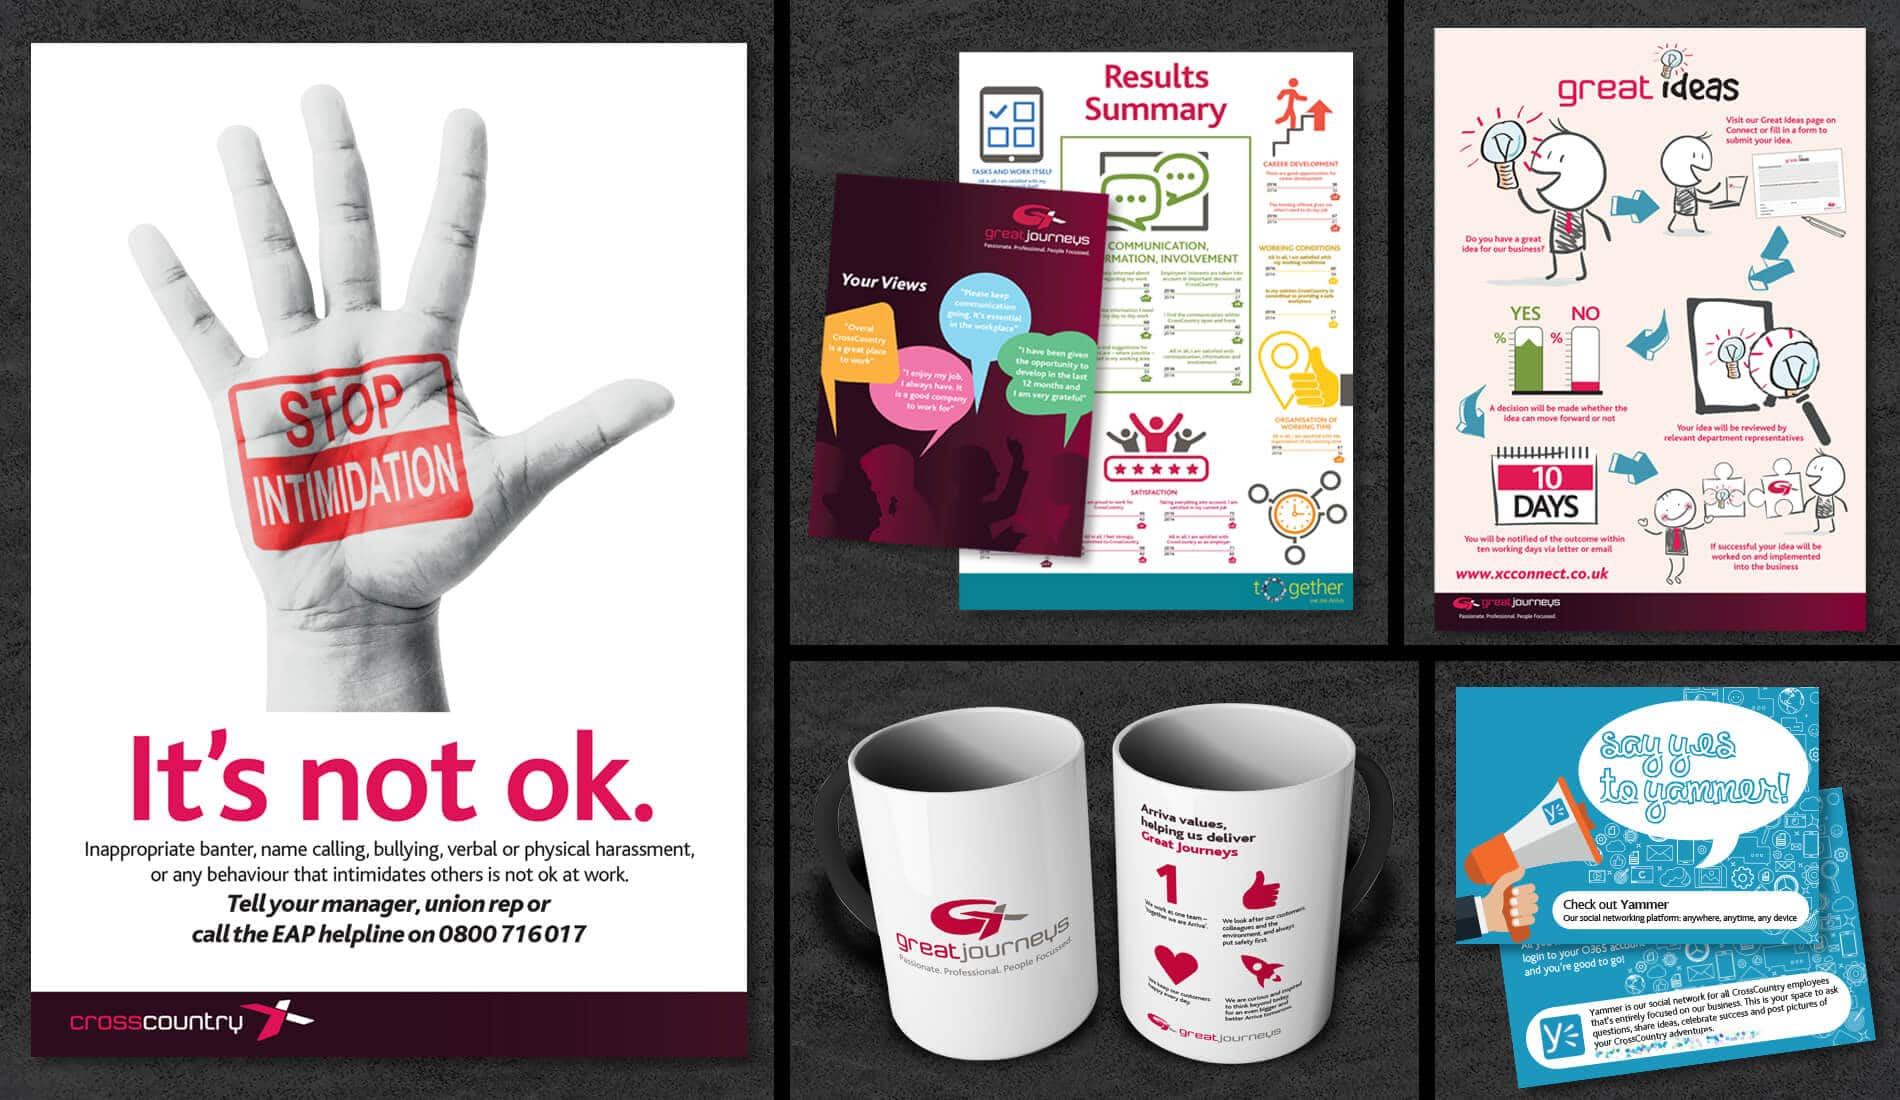 Cross Country poster campaigns, with mug and business cards